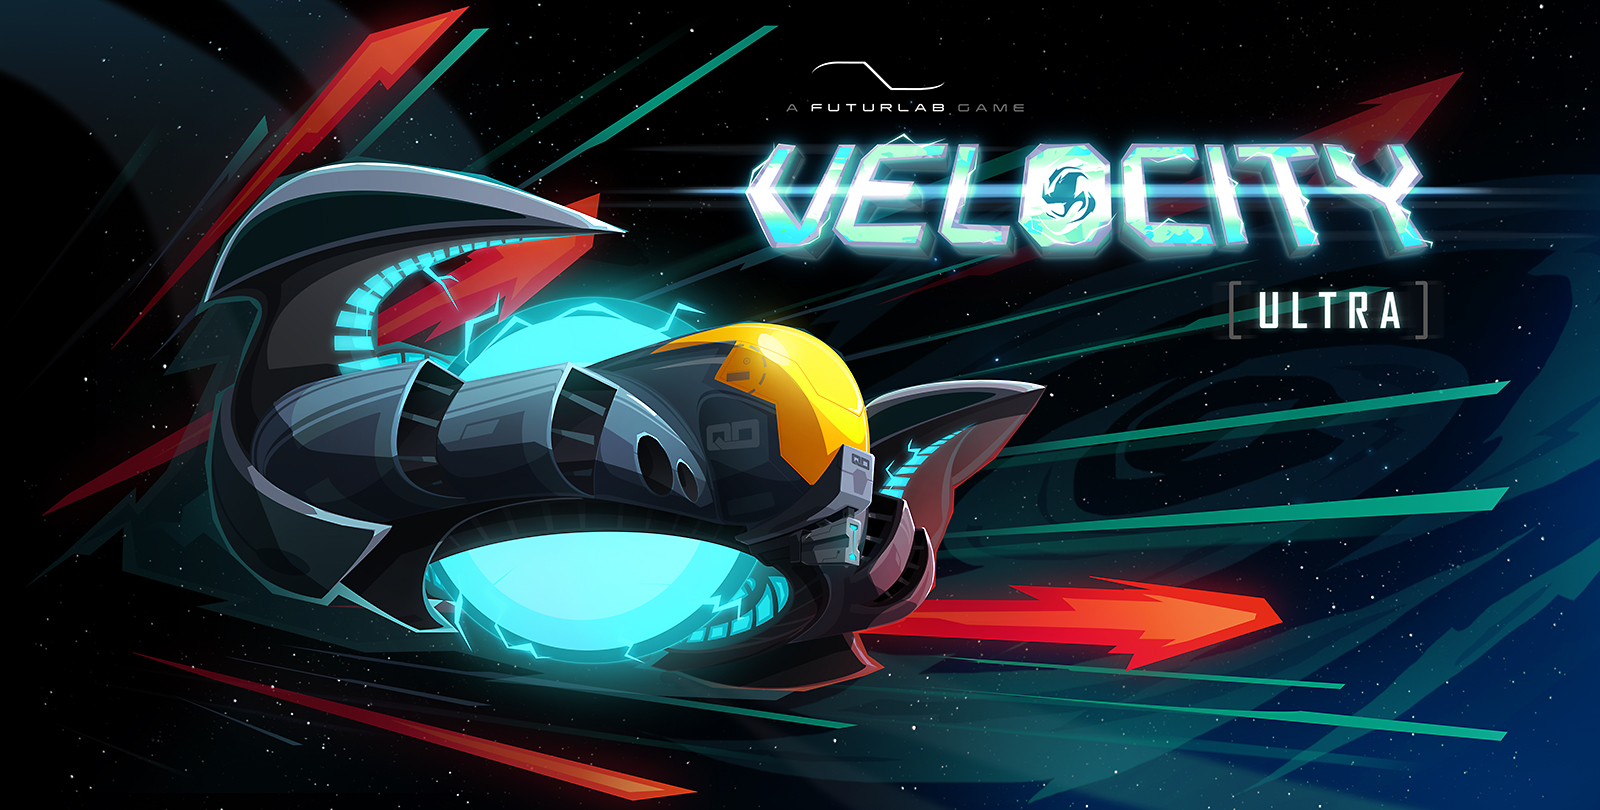 Velocity Ultra Splash